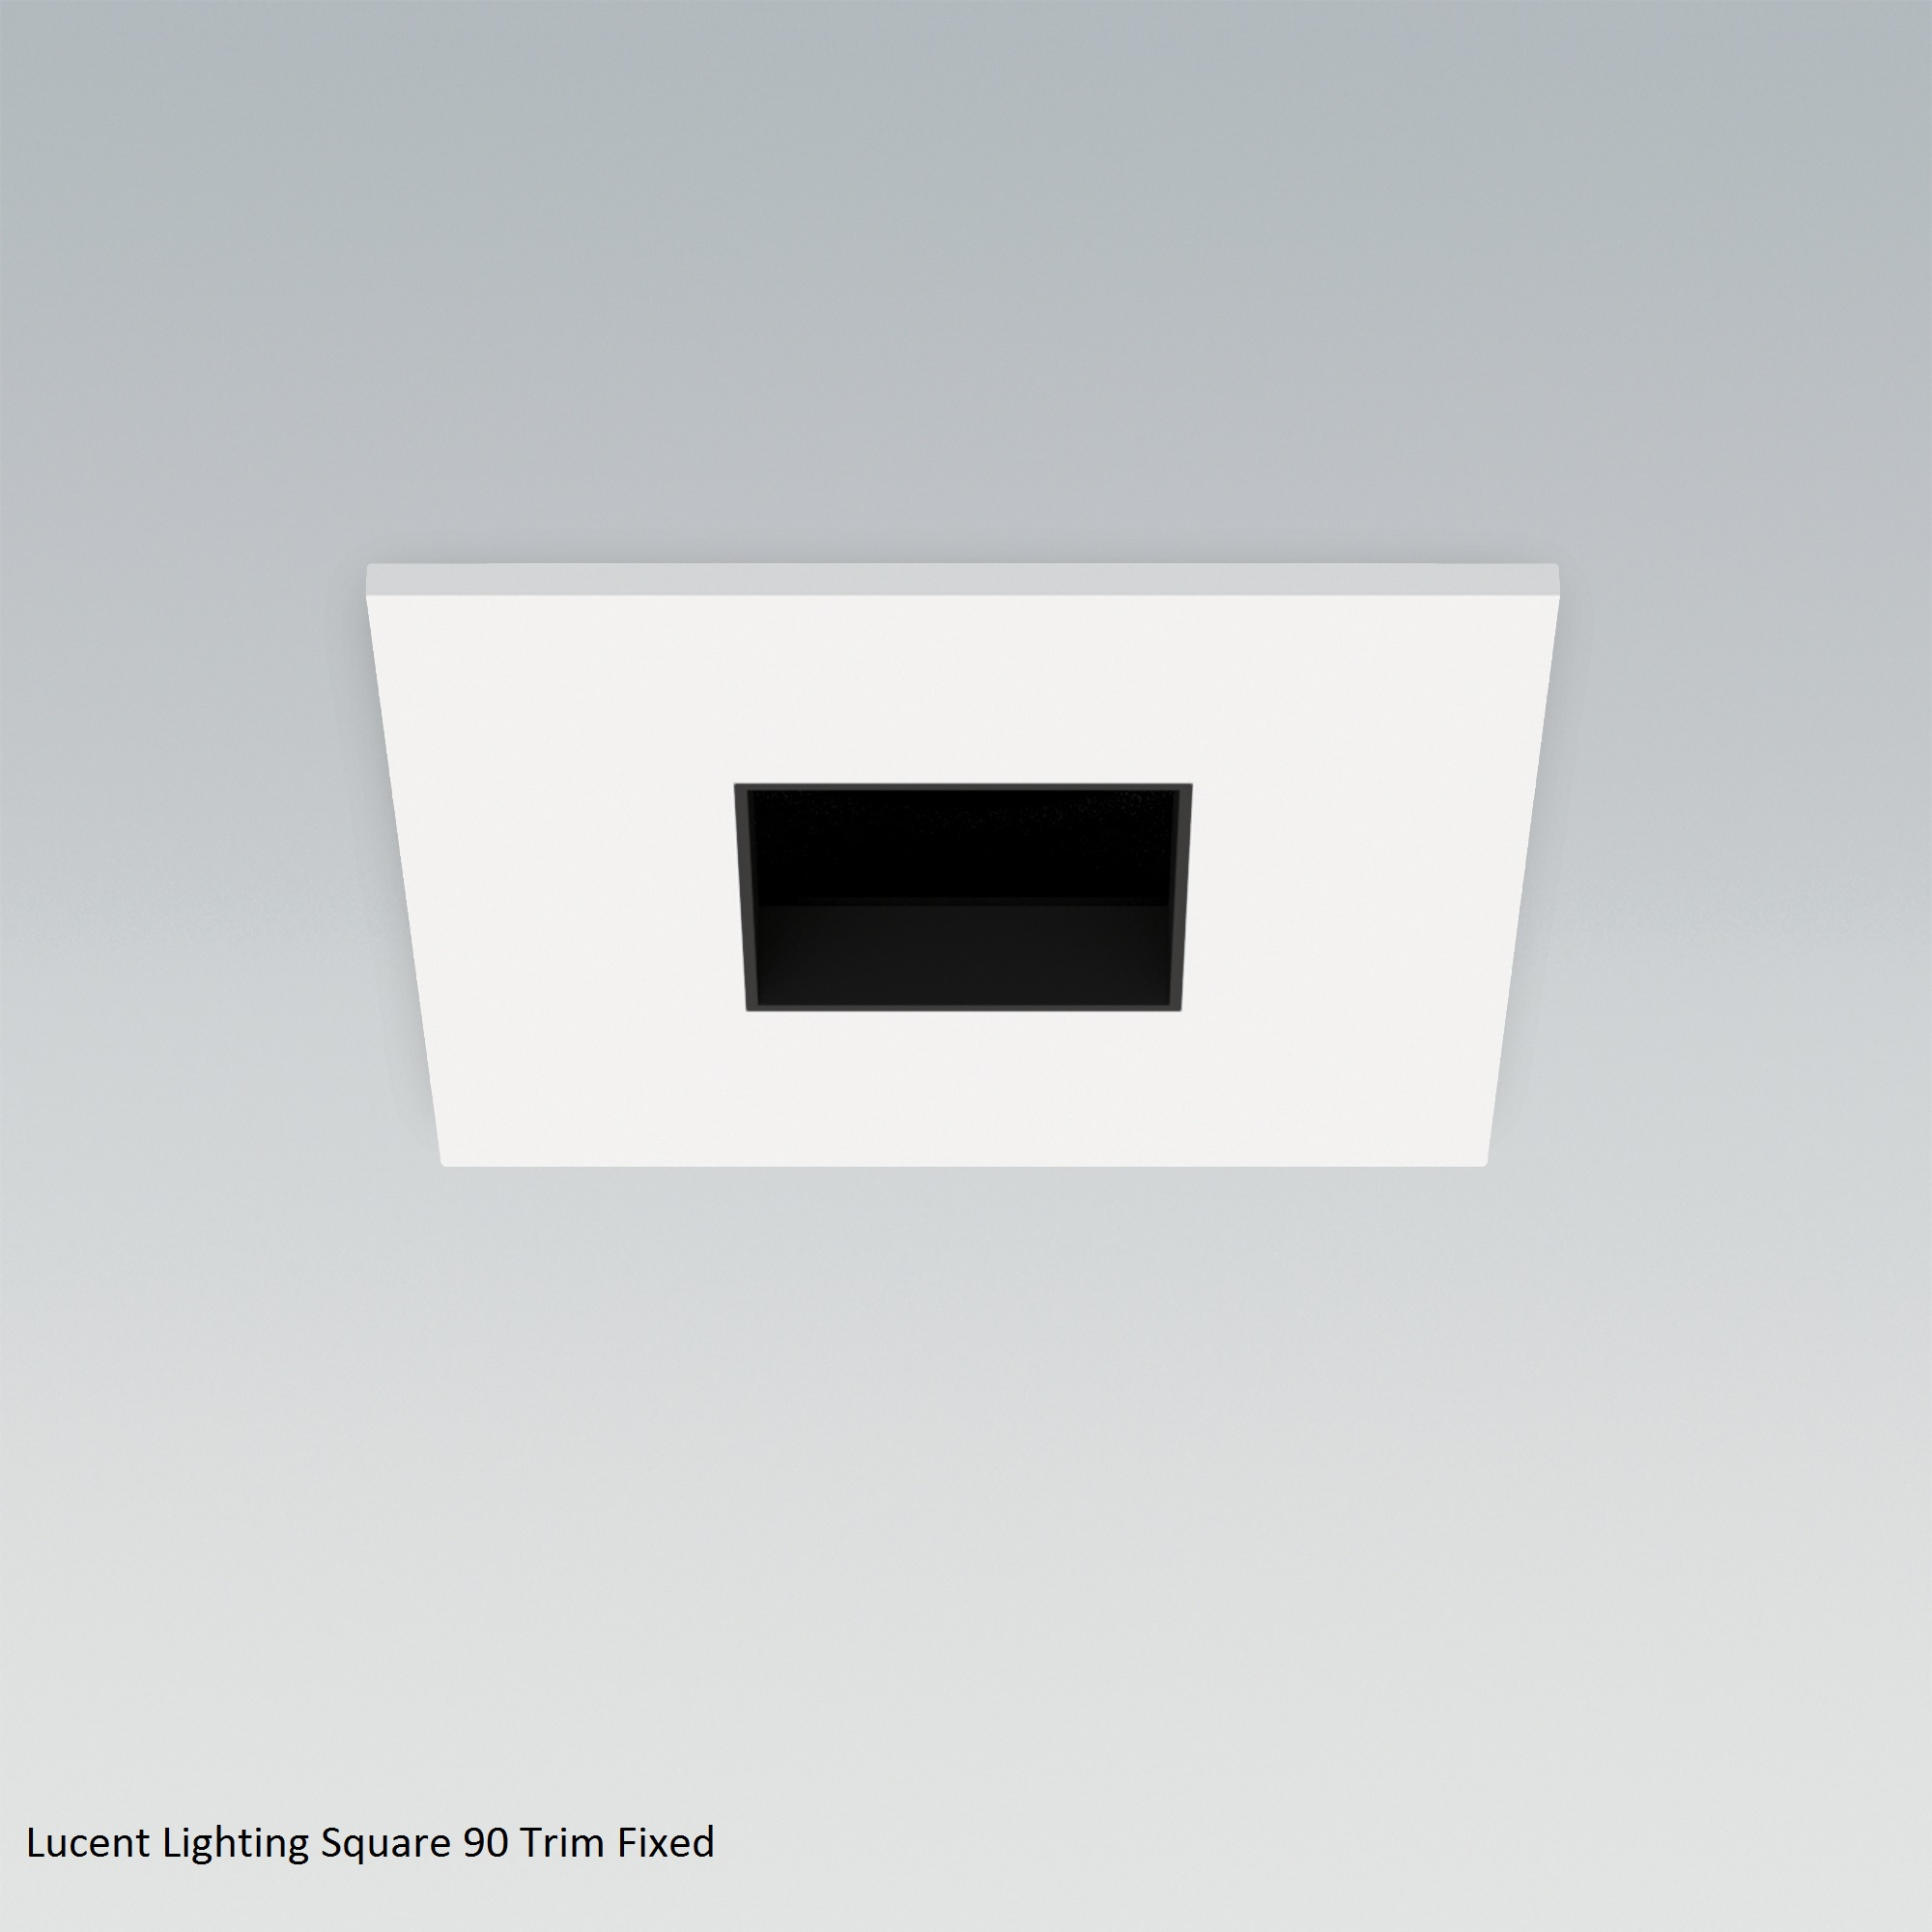 lucent-lighting-square-90-trim-fixed